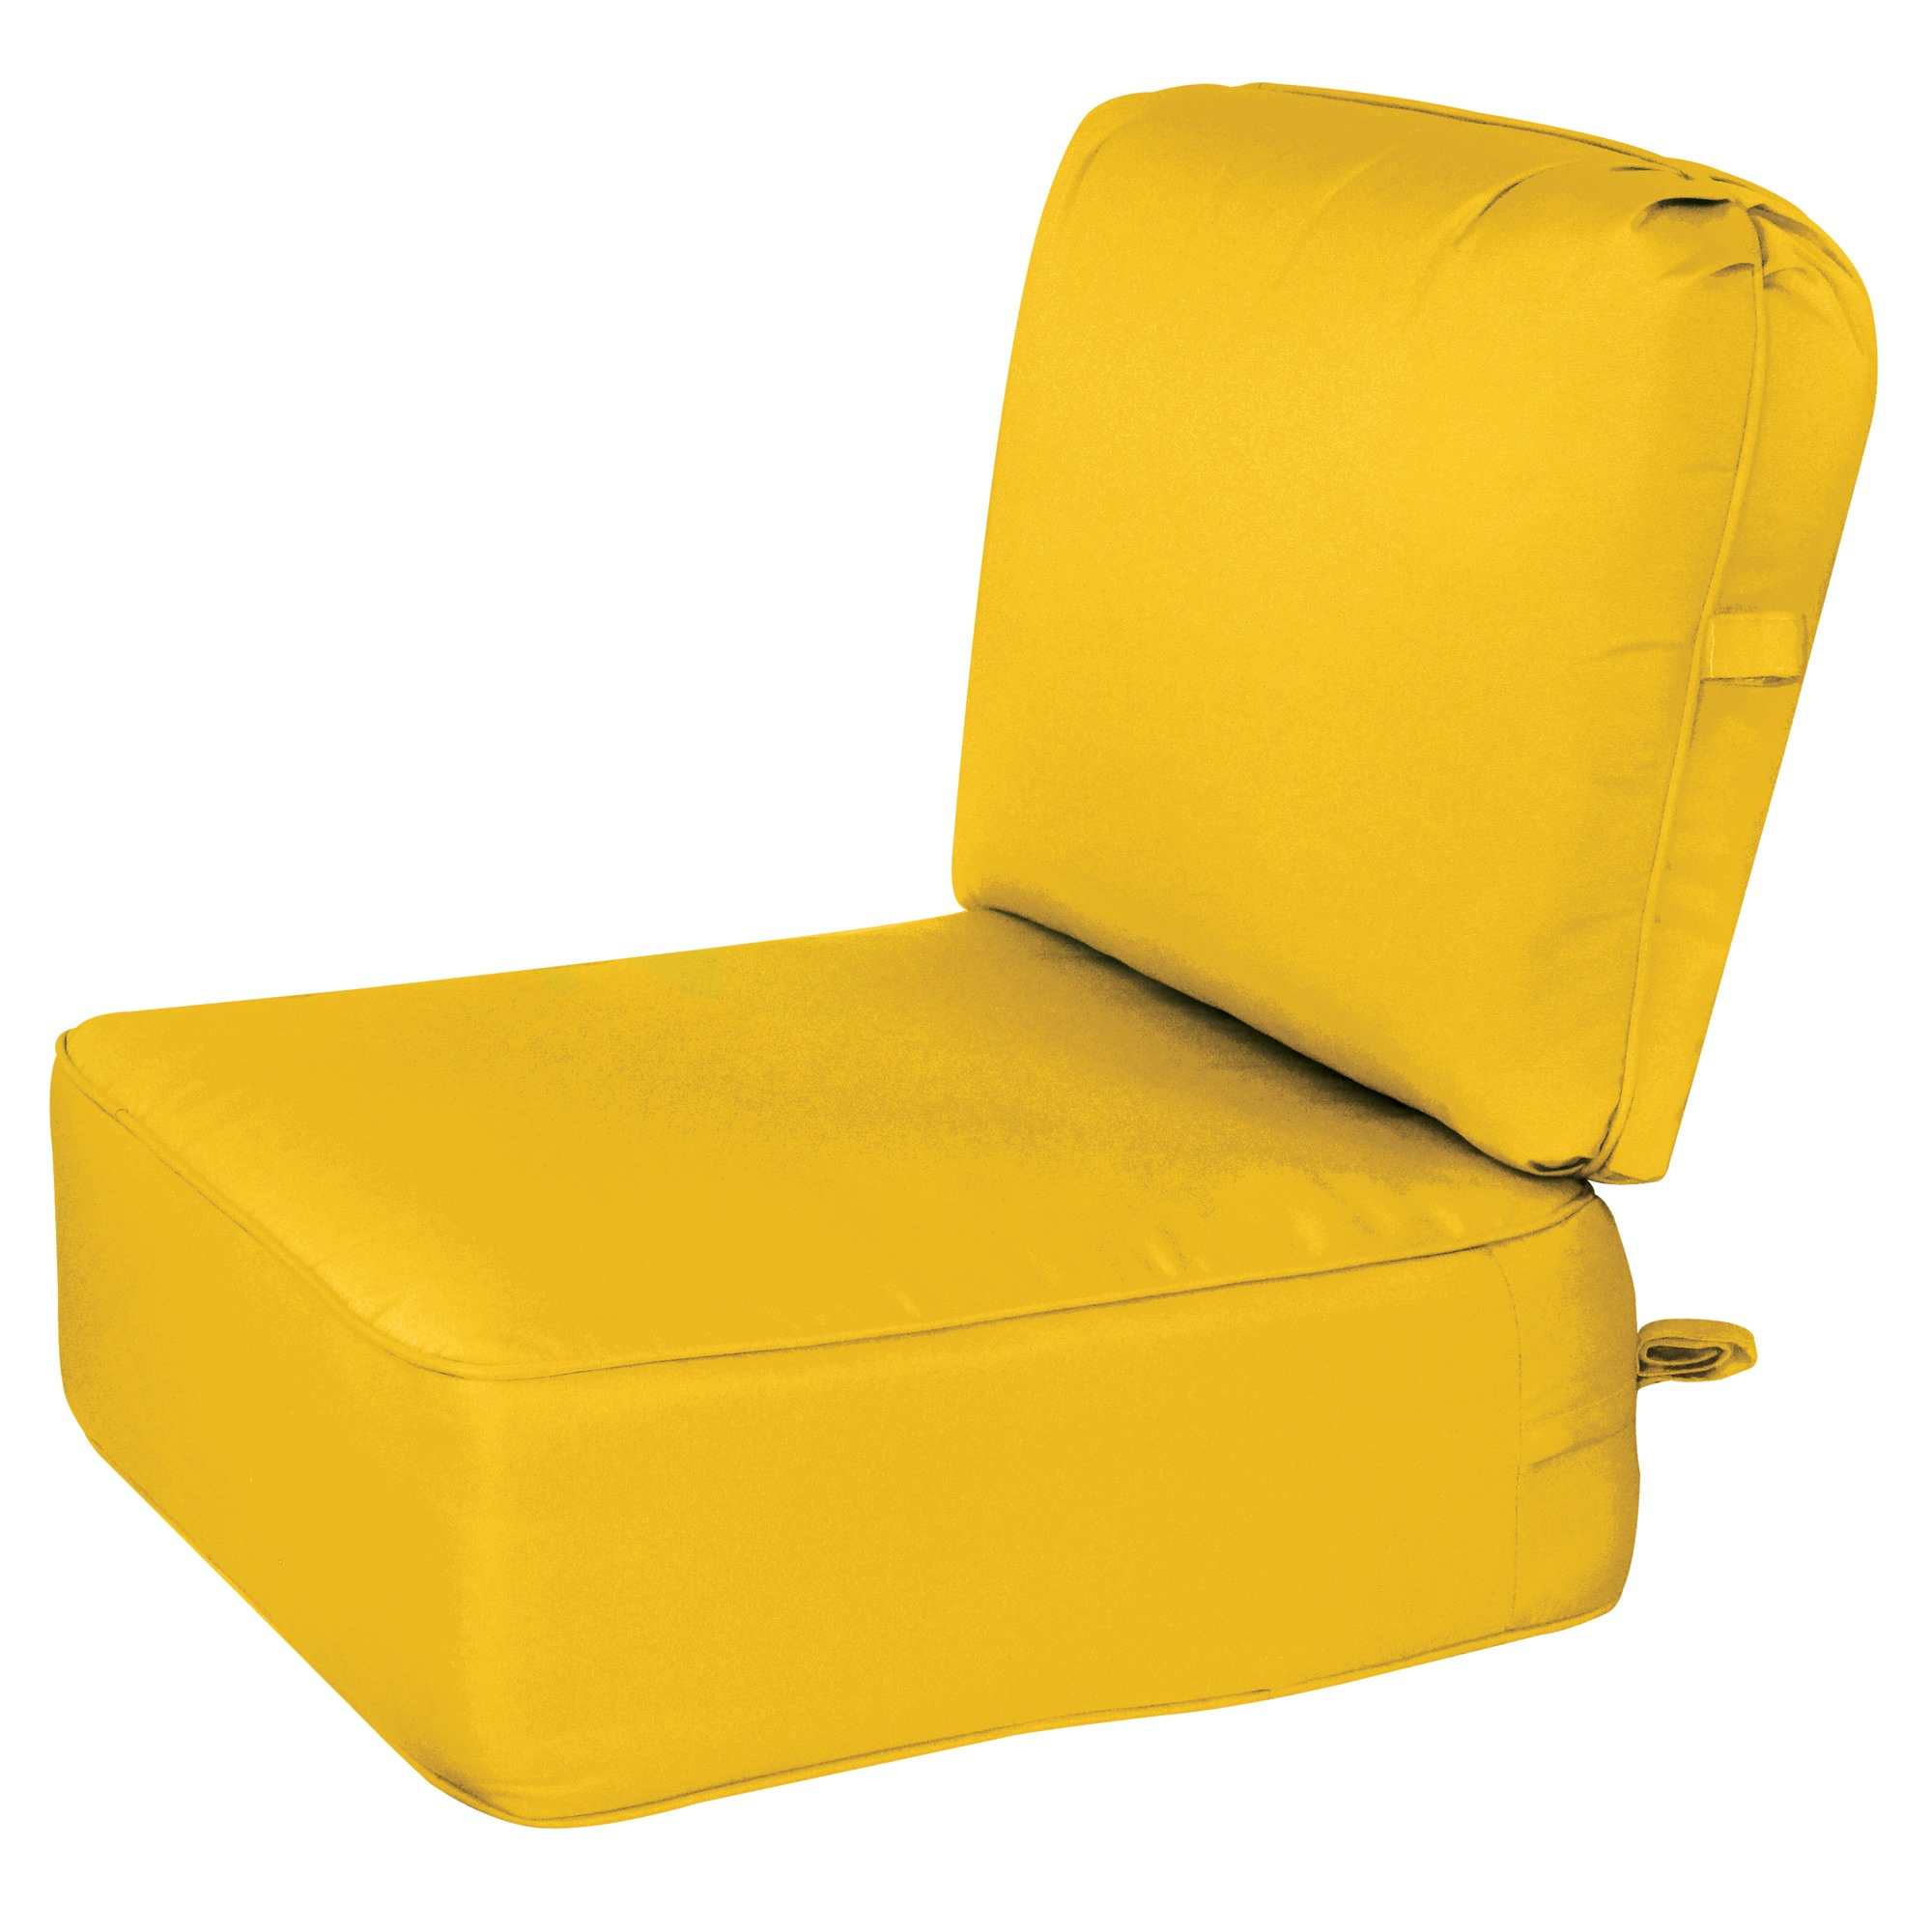 9 in deep seating cushion with box edge sunbrella colors